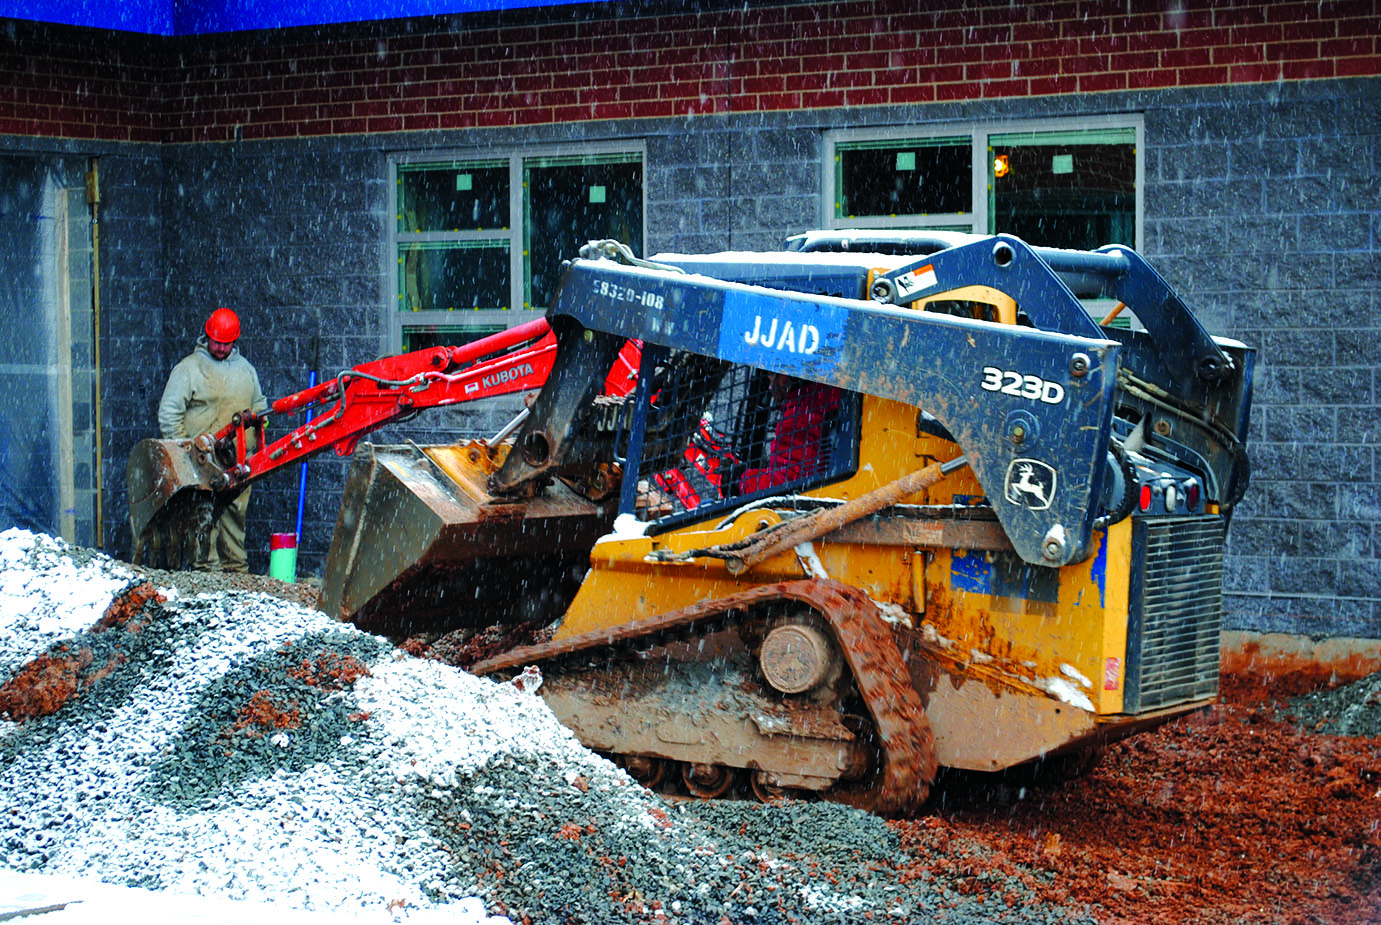 Construction+crews+work+on+the+addition+to+the+band+room+with+a+bulldozer+and+backhoe+during+a+snow+flurry+over+the+winter.+